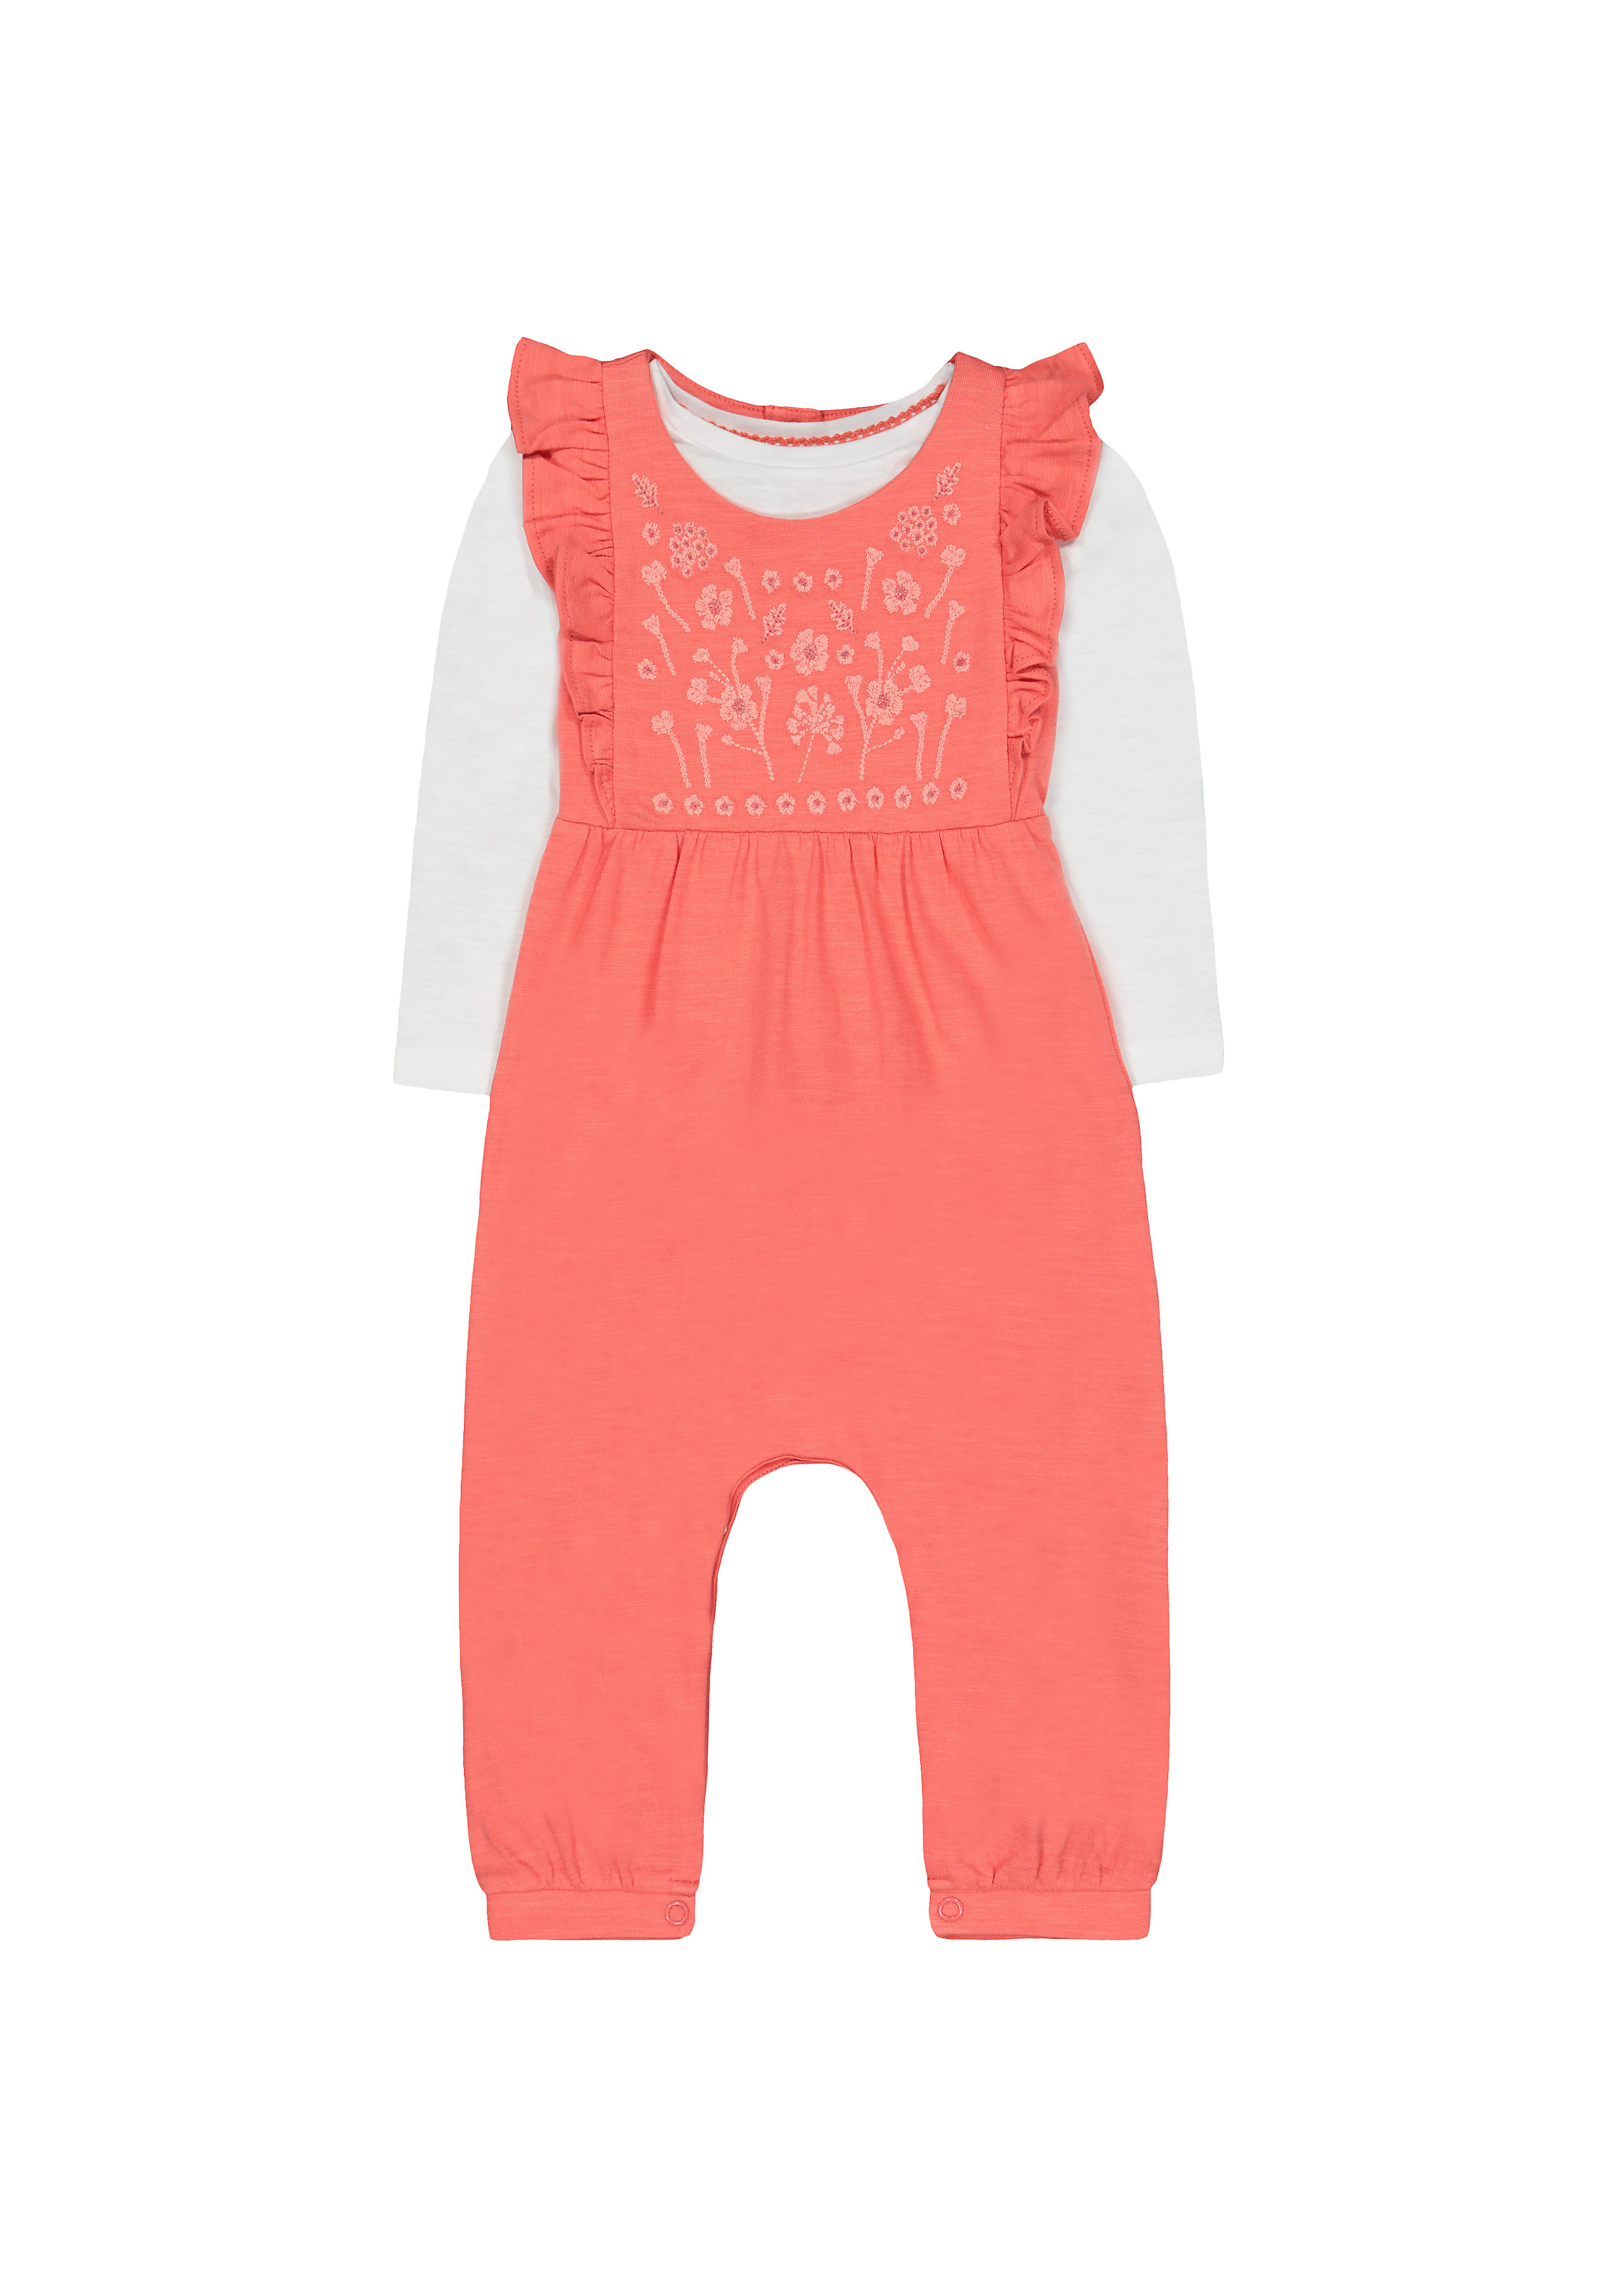 Mothercare   Girls Full Sleeves Dungaree Set Floral Embroidery - Coral